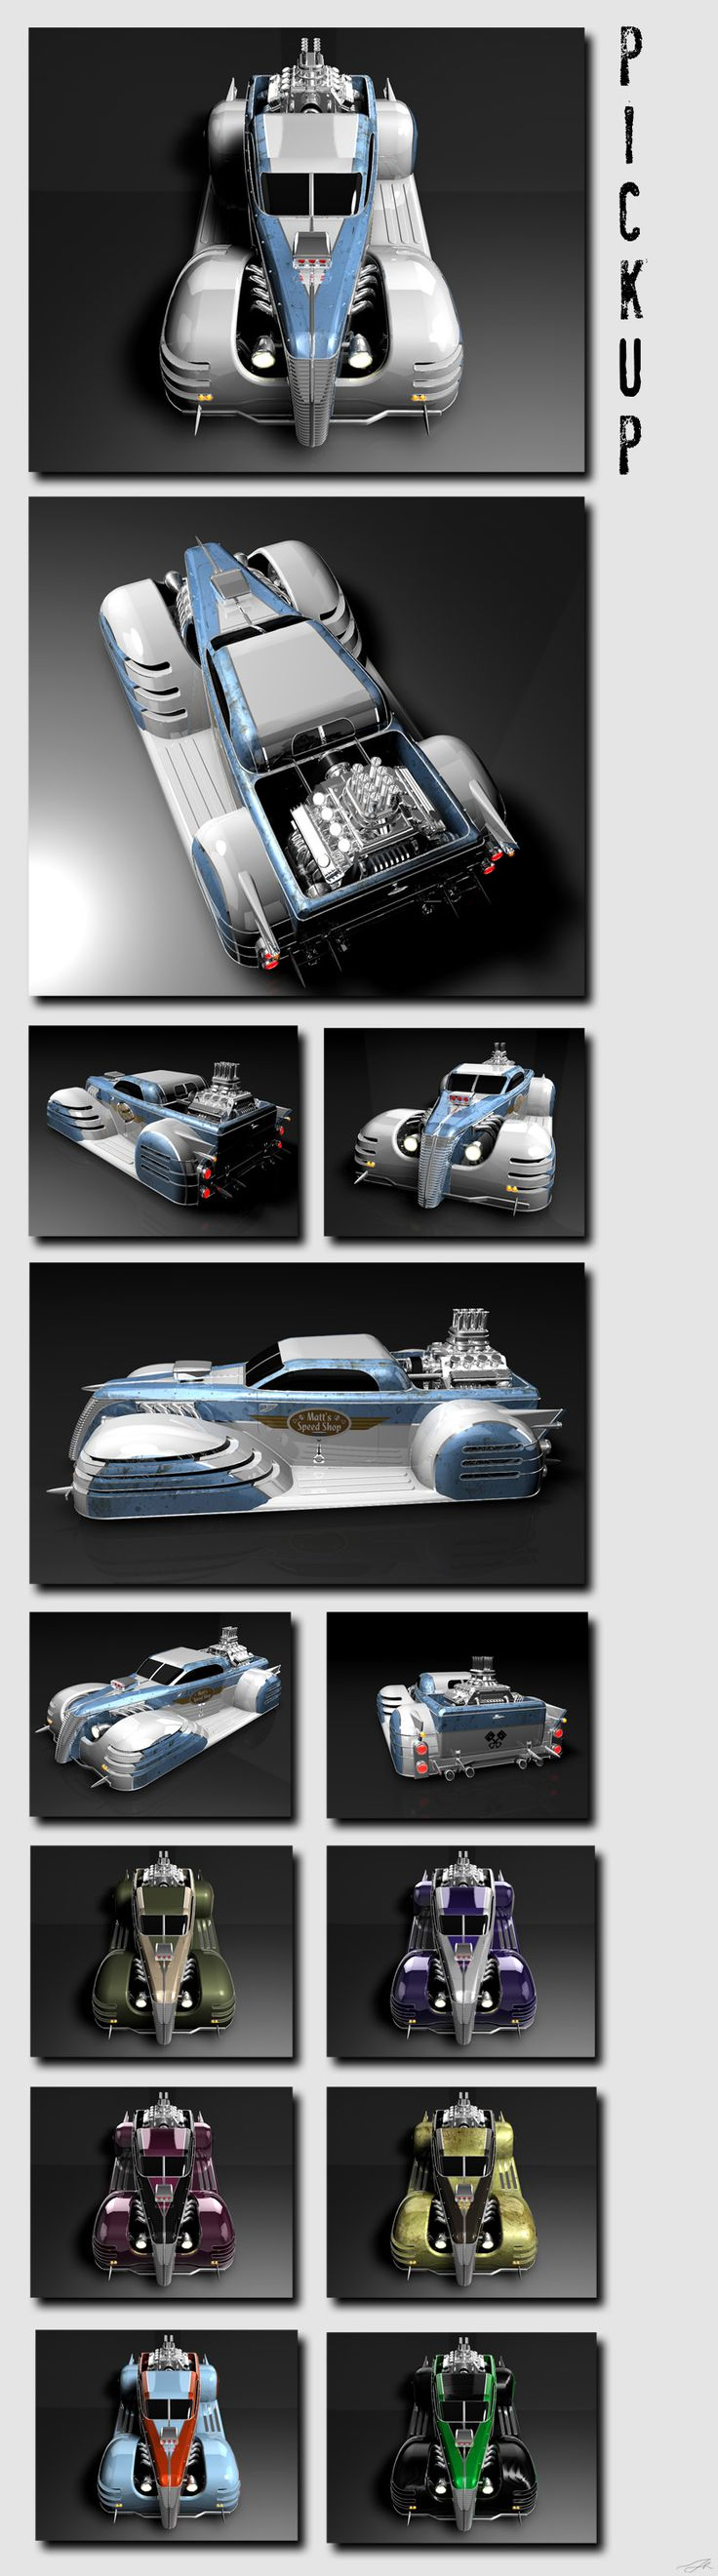 Mattel legends 1 24 1969 hot wheels twin mill concept car electronic - Update Better Rendering And Layout Modelled In Rhino Rendered In Cinema More Of This Car Ladydeuce